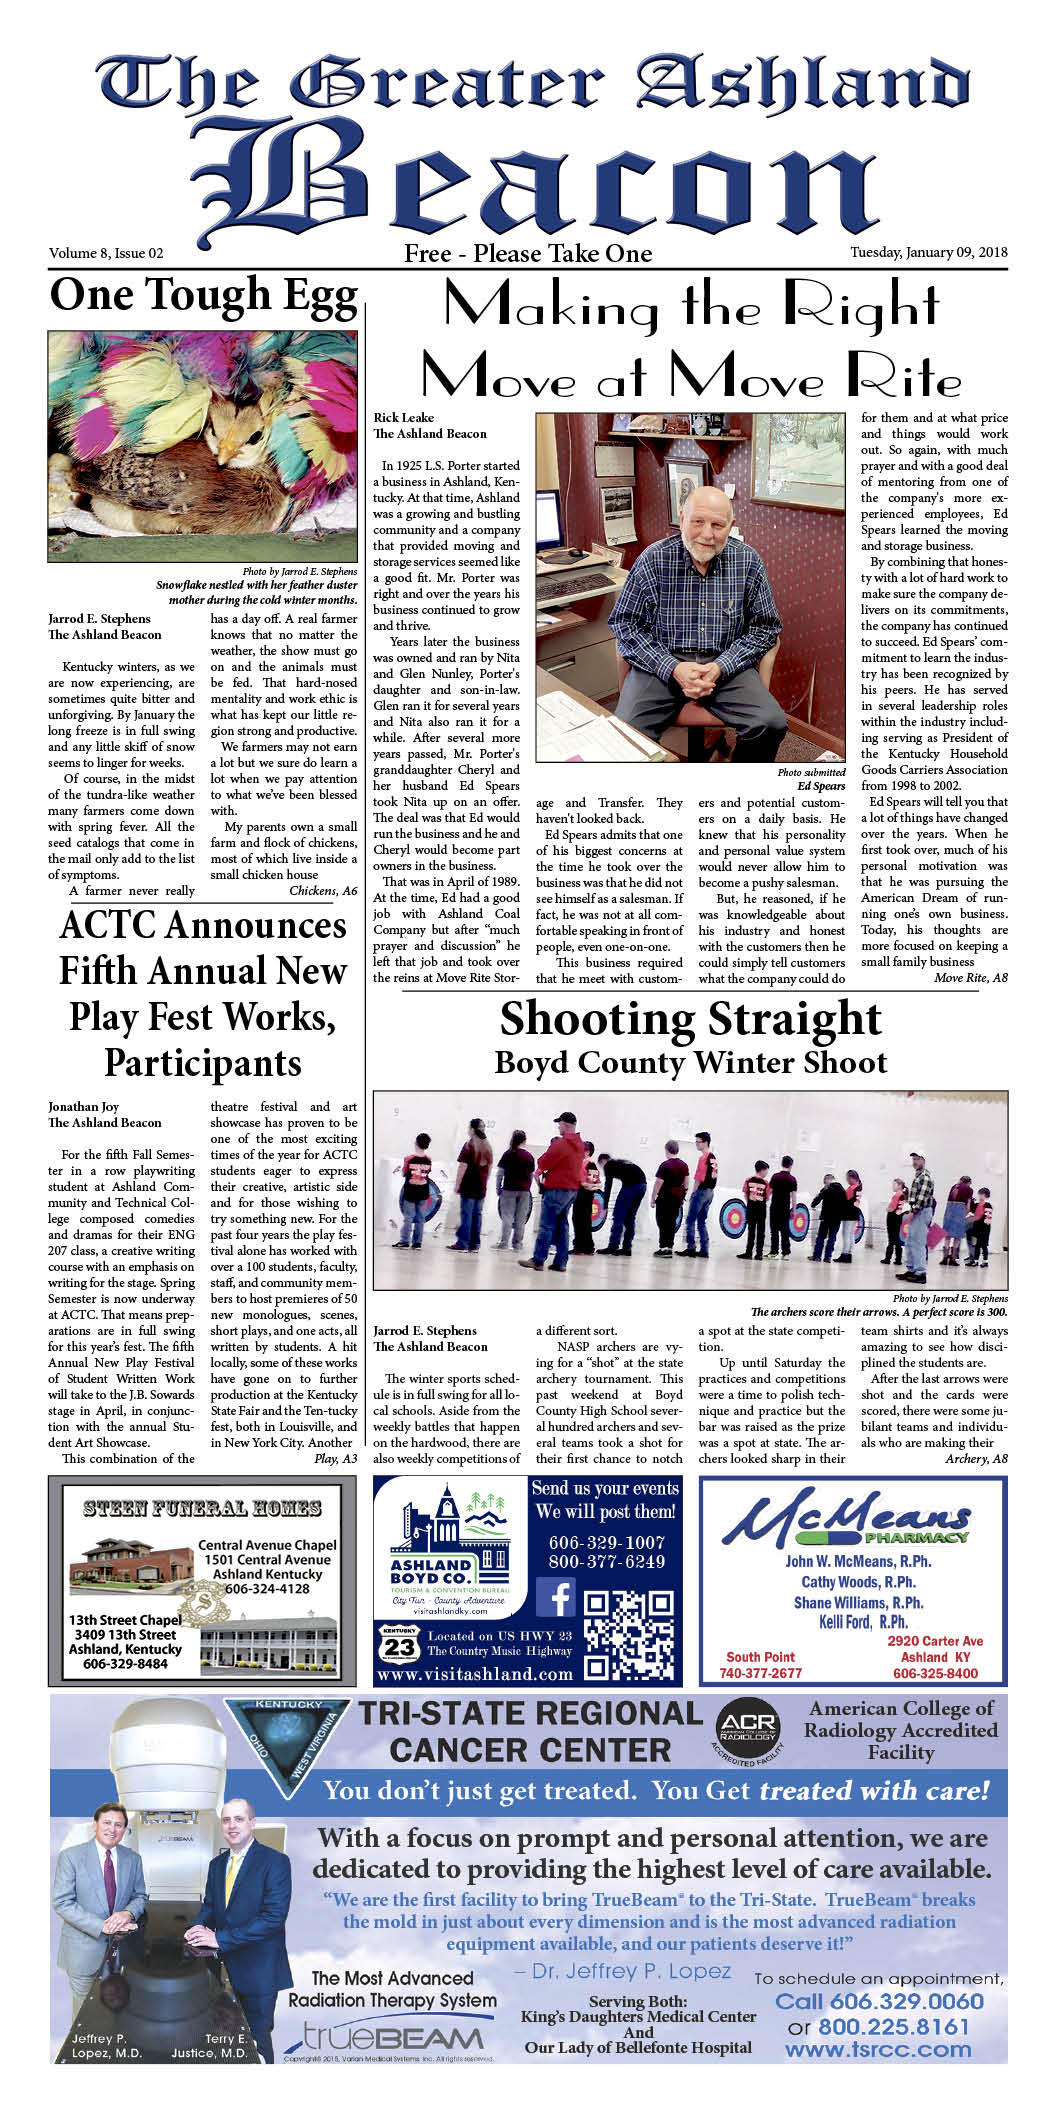 Image of the Greater Ashland Beacon article on the archery teams and their winter tournament.